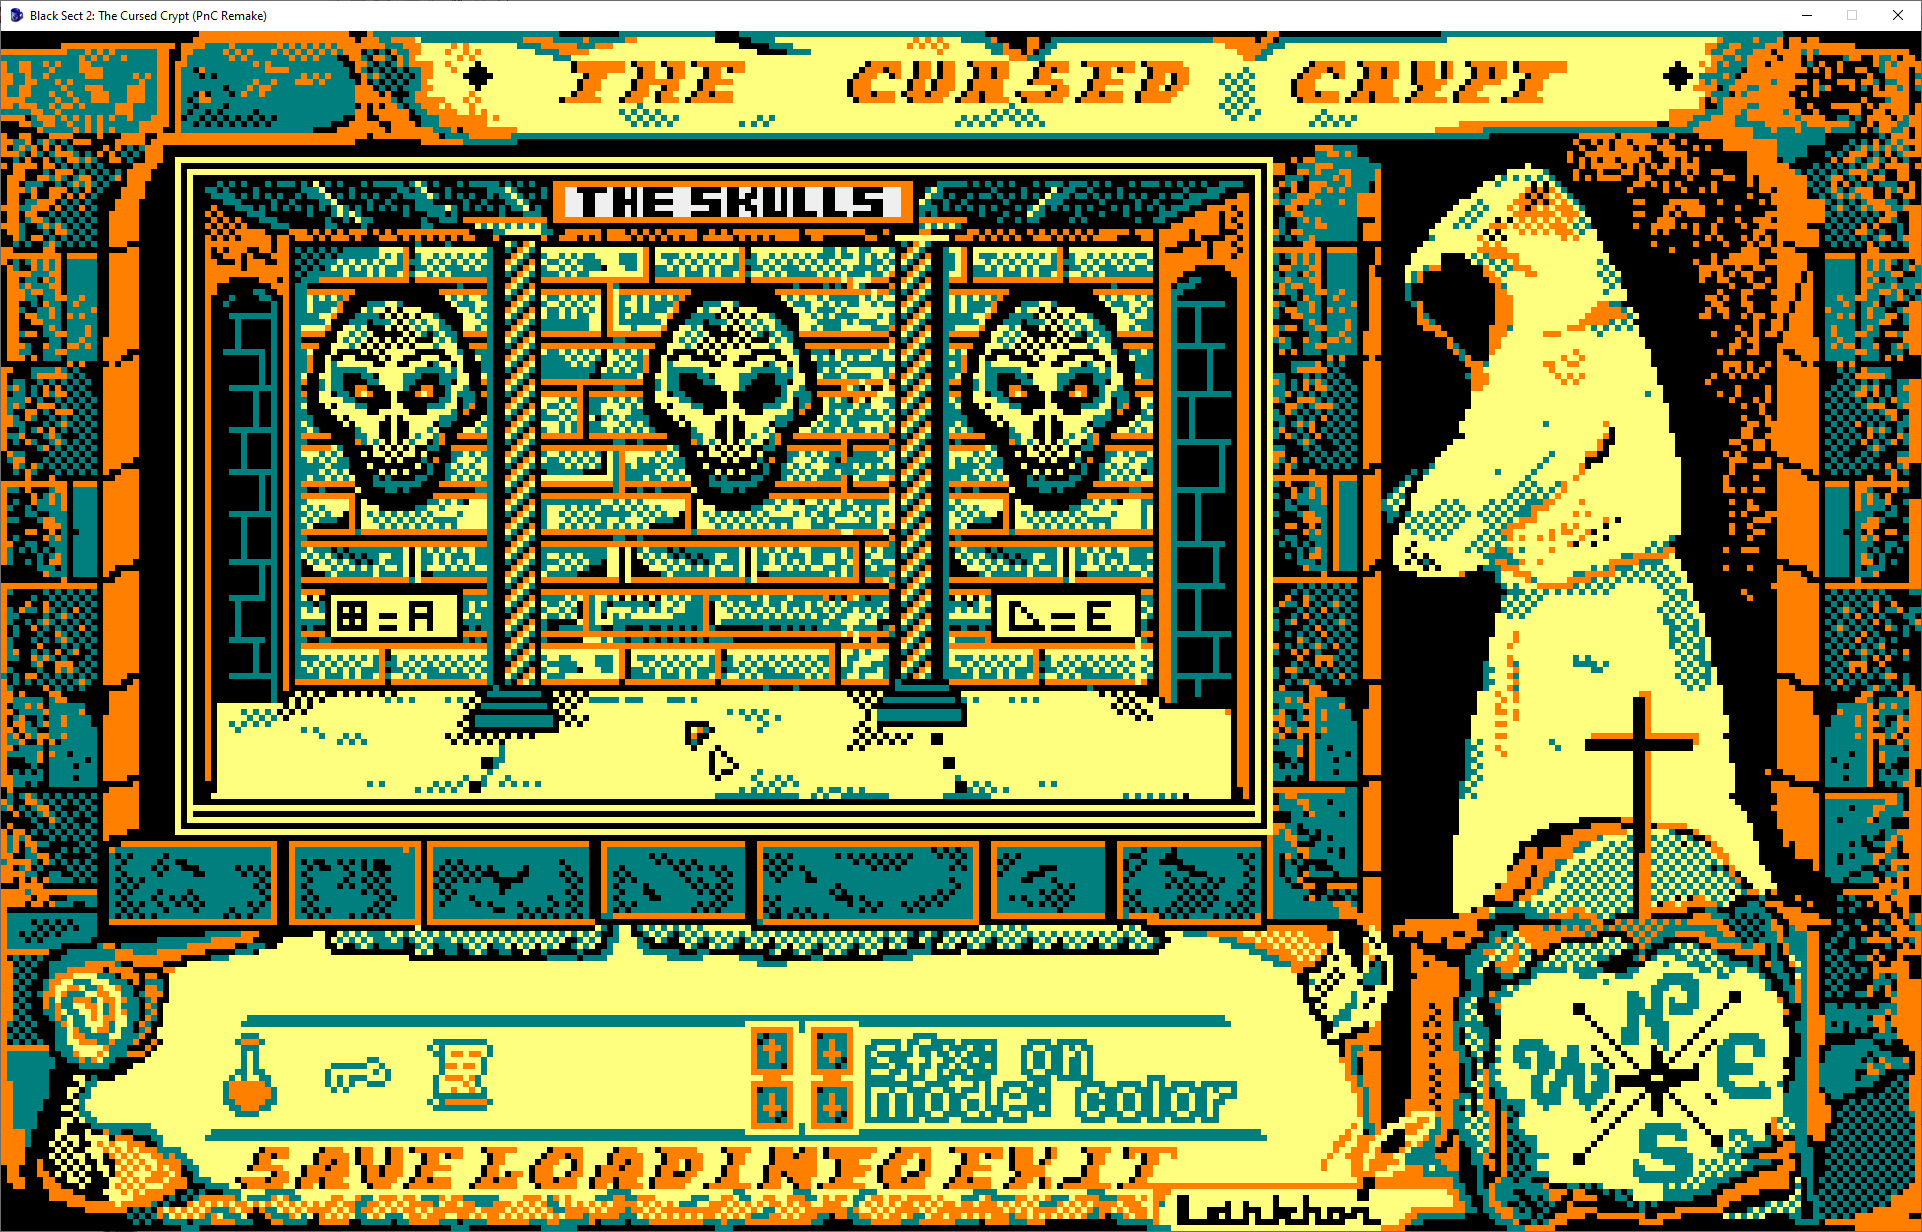 Screenshot 2 of Black Sect 2: The Cursed Crypt (PnC Remake) width=